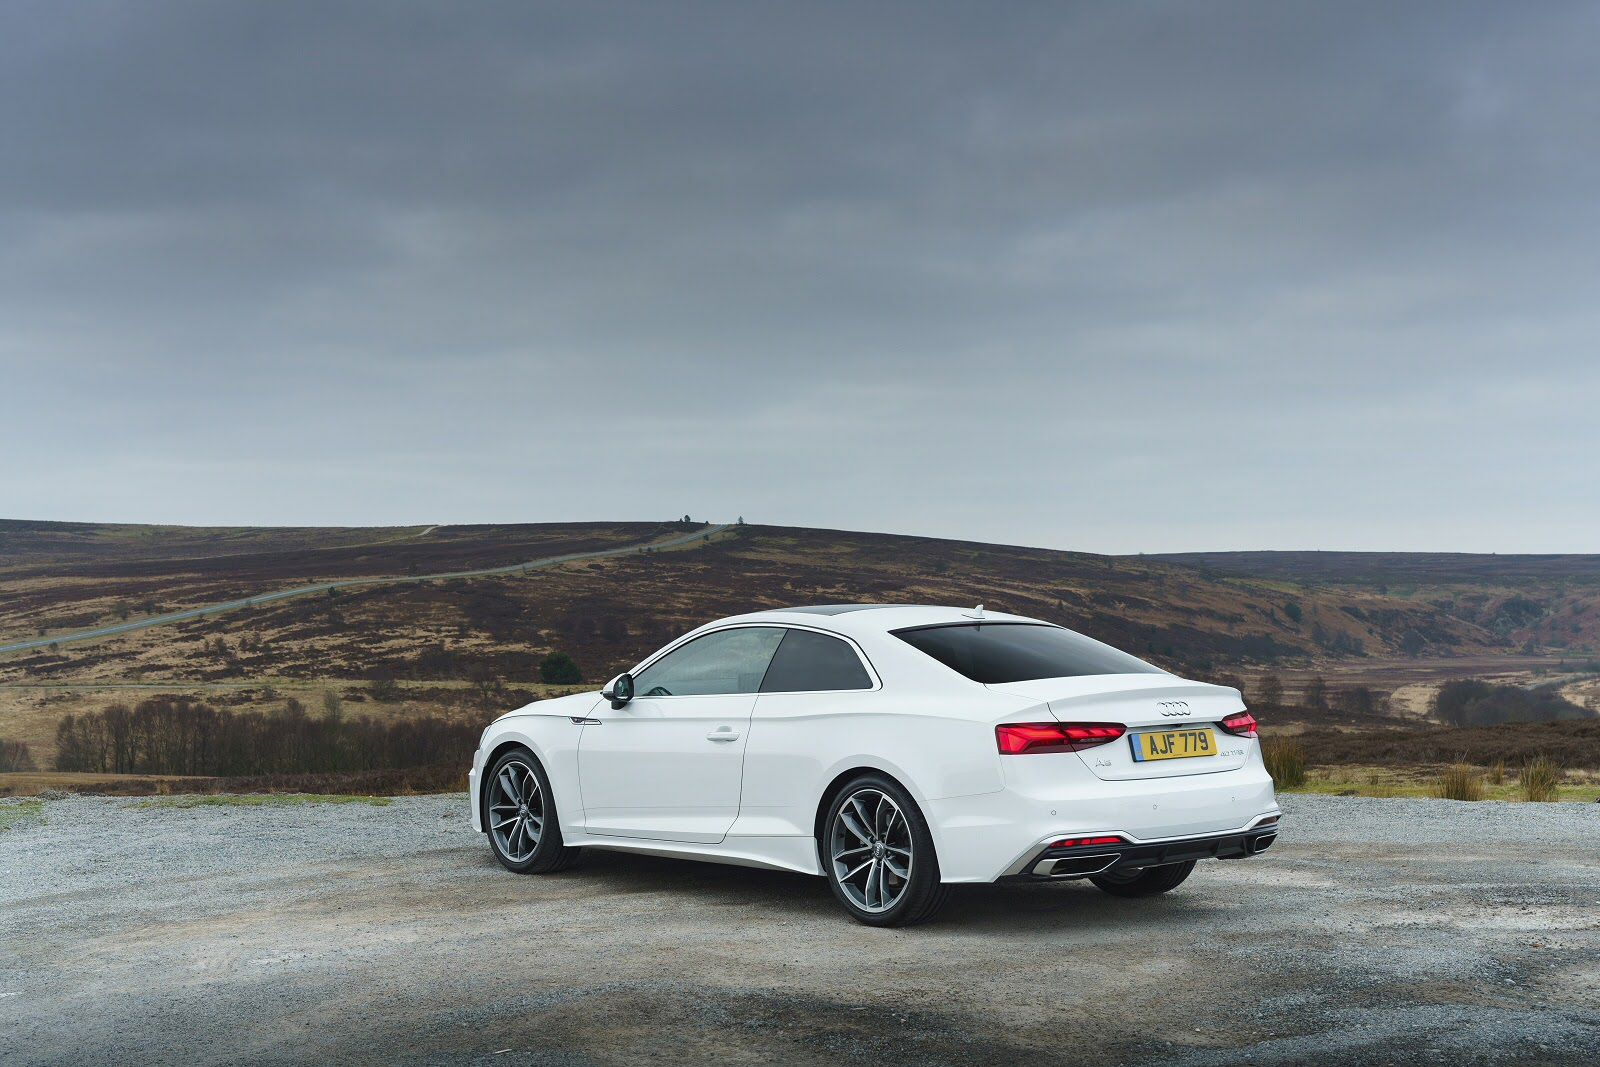 a5_coupe_diesel_98334.jpg - 35 TDI S Line 2dr S Tronic